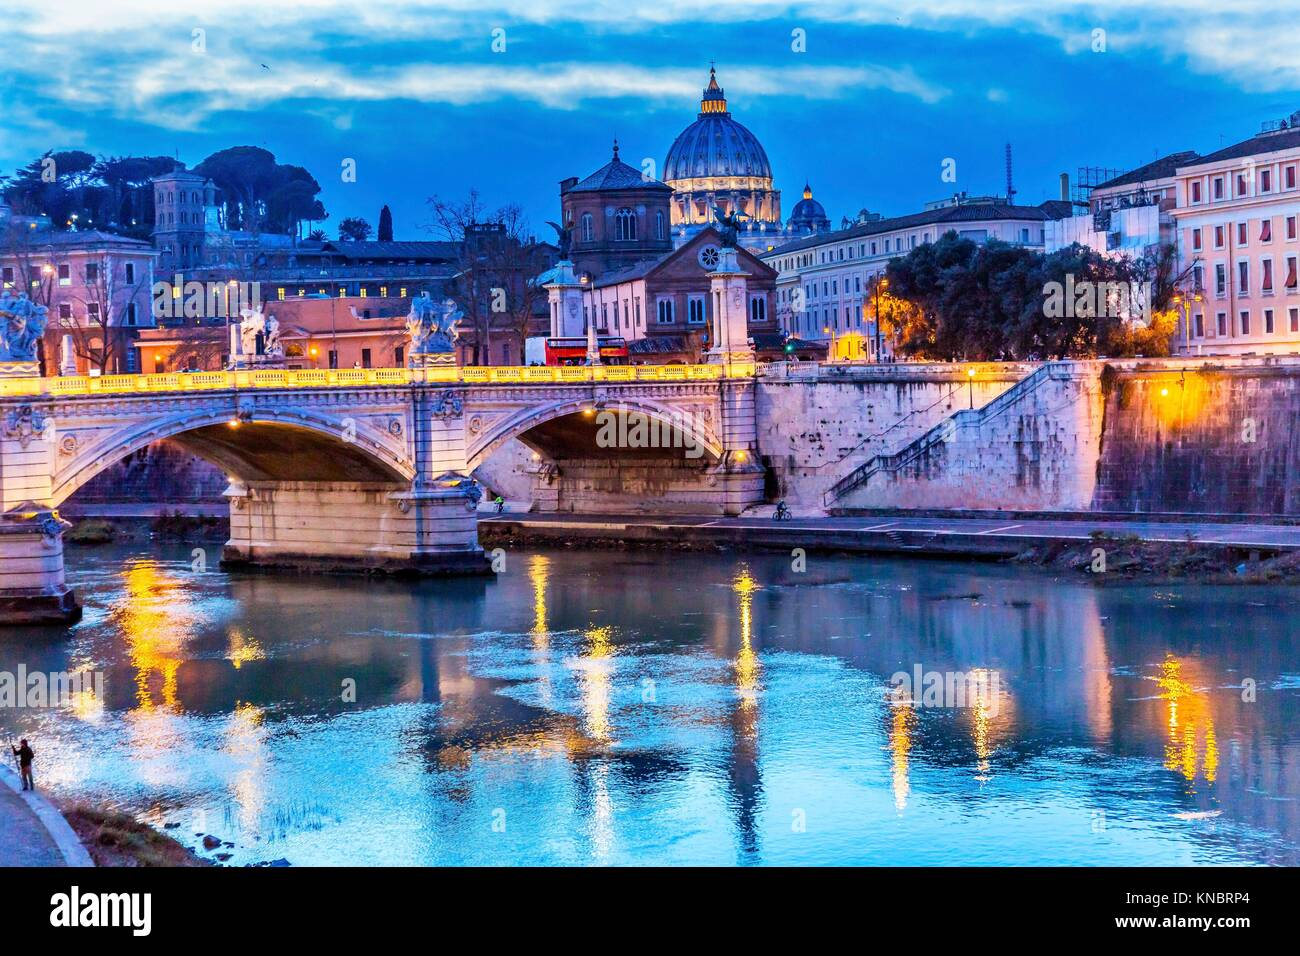 Vatican Dome Tiber River Ponte Bridge Vittorio Emanuele III Rome Italy. Bridge built in 1886 near Vatican. - Stock Image